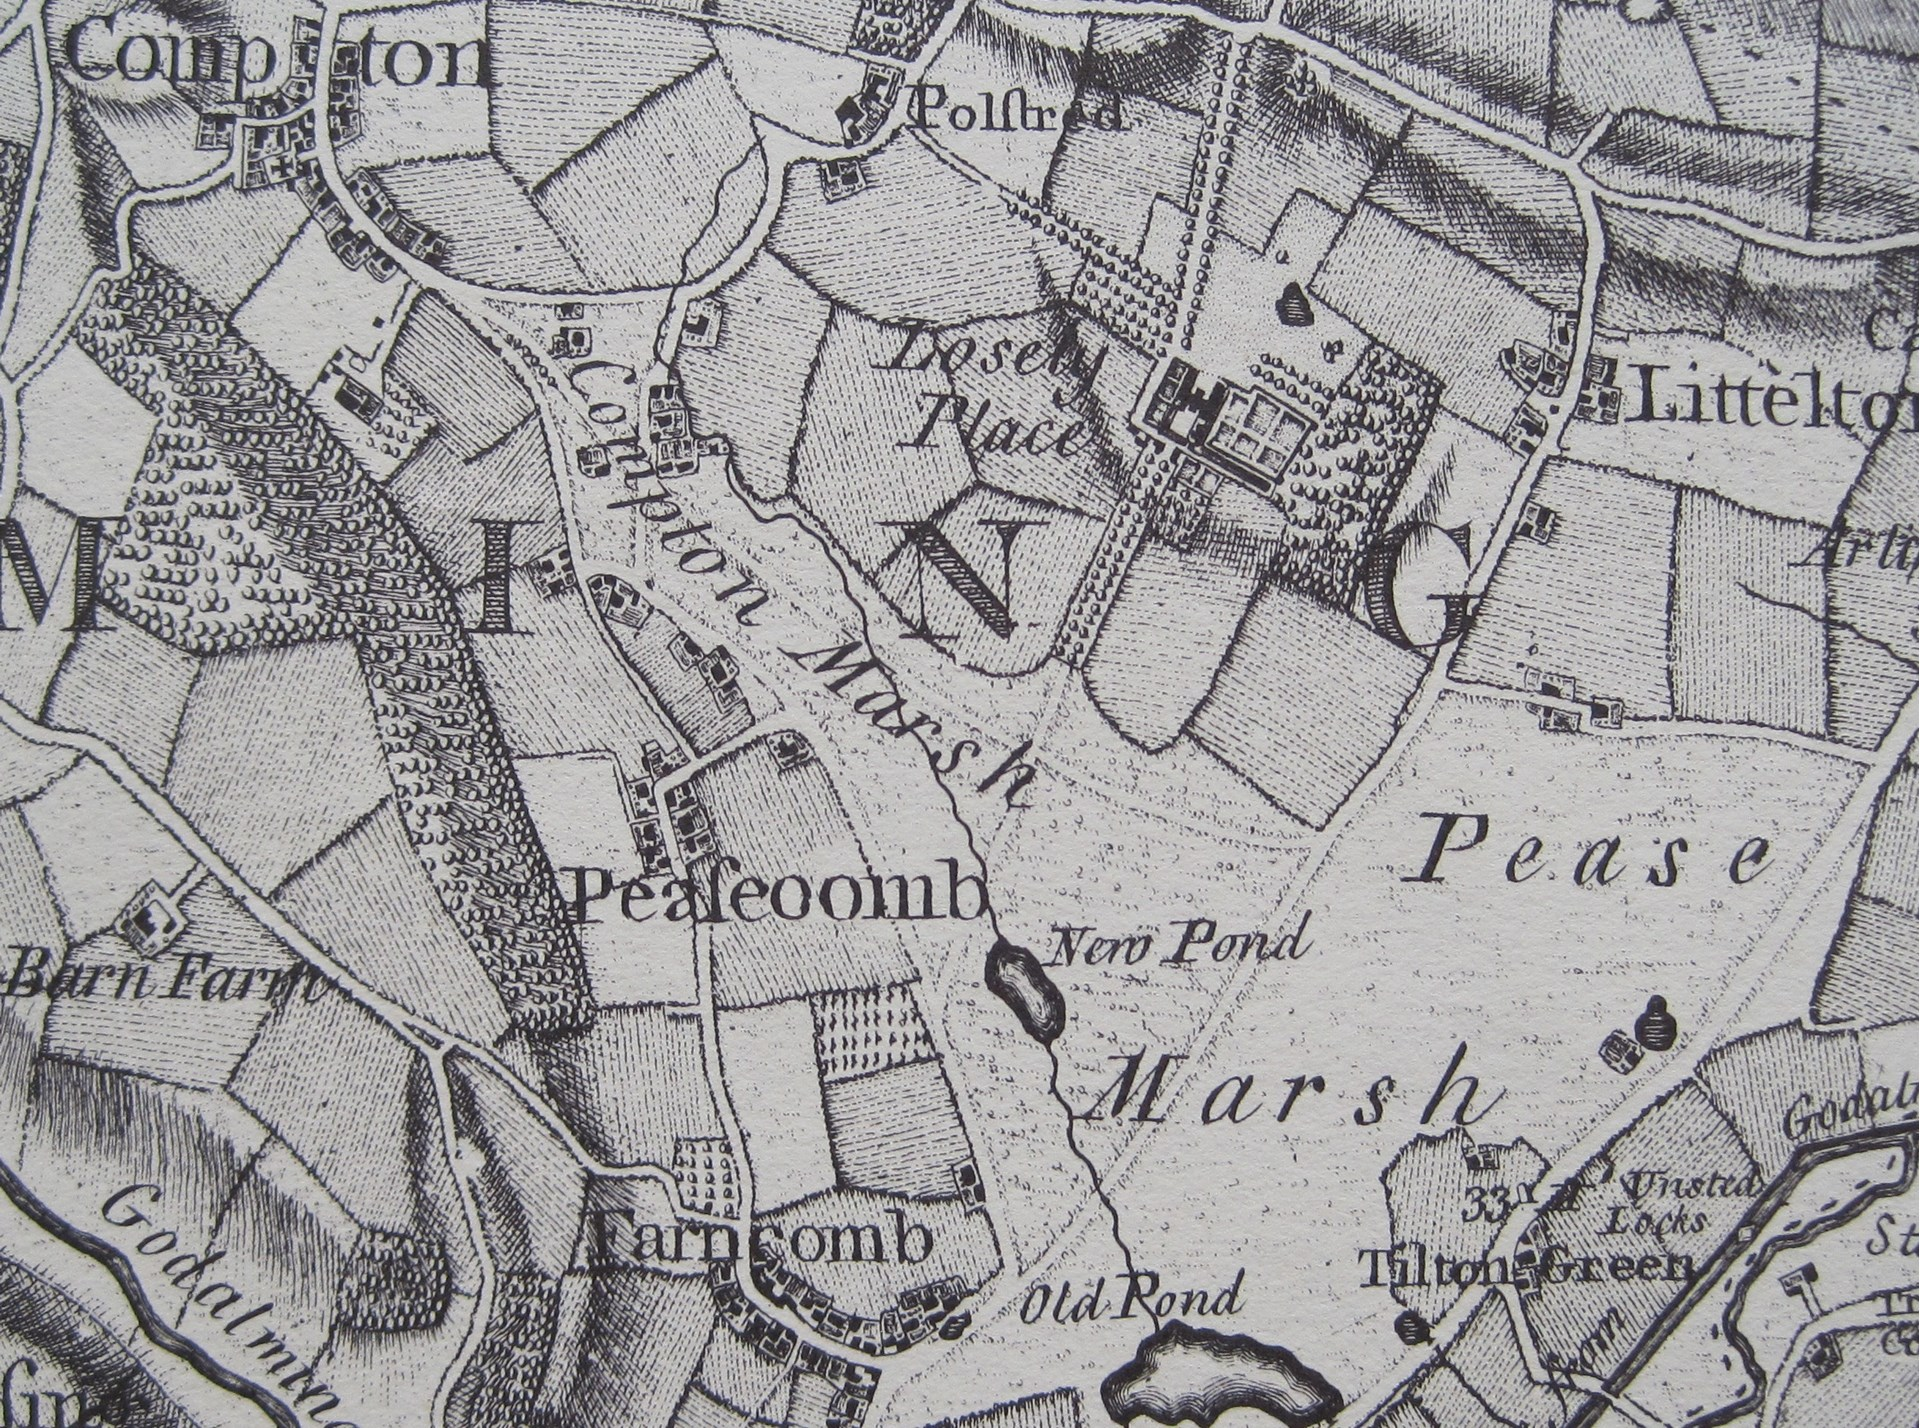 Extract from John Rocque's map of Surrey, c.1760.